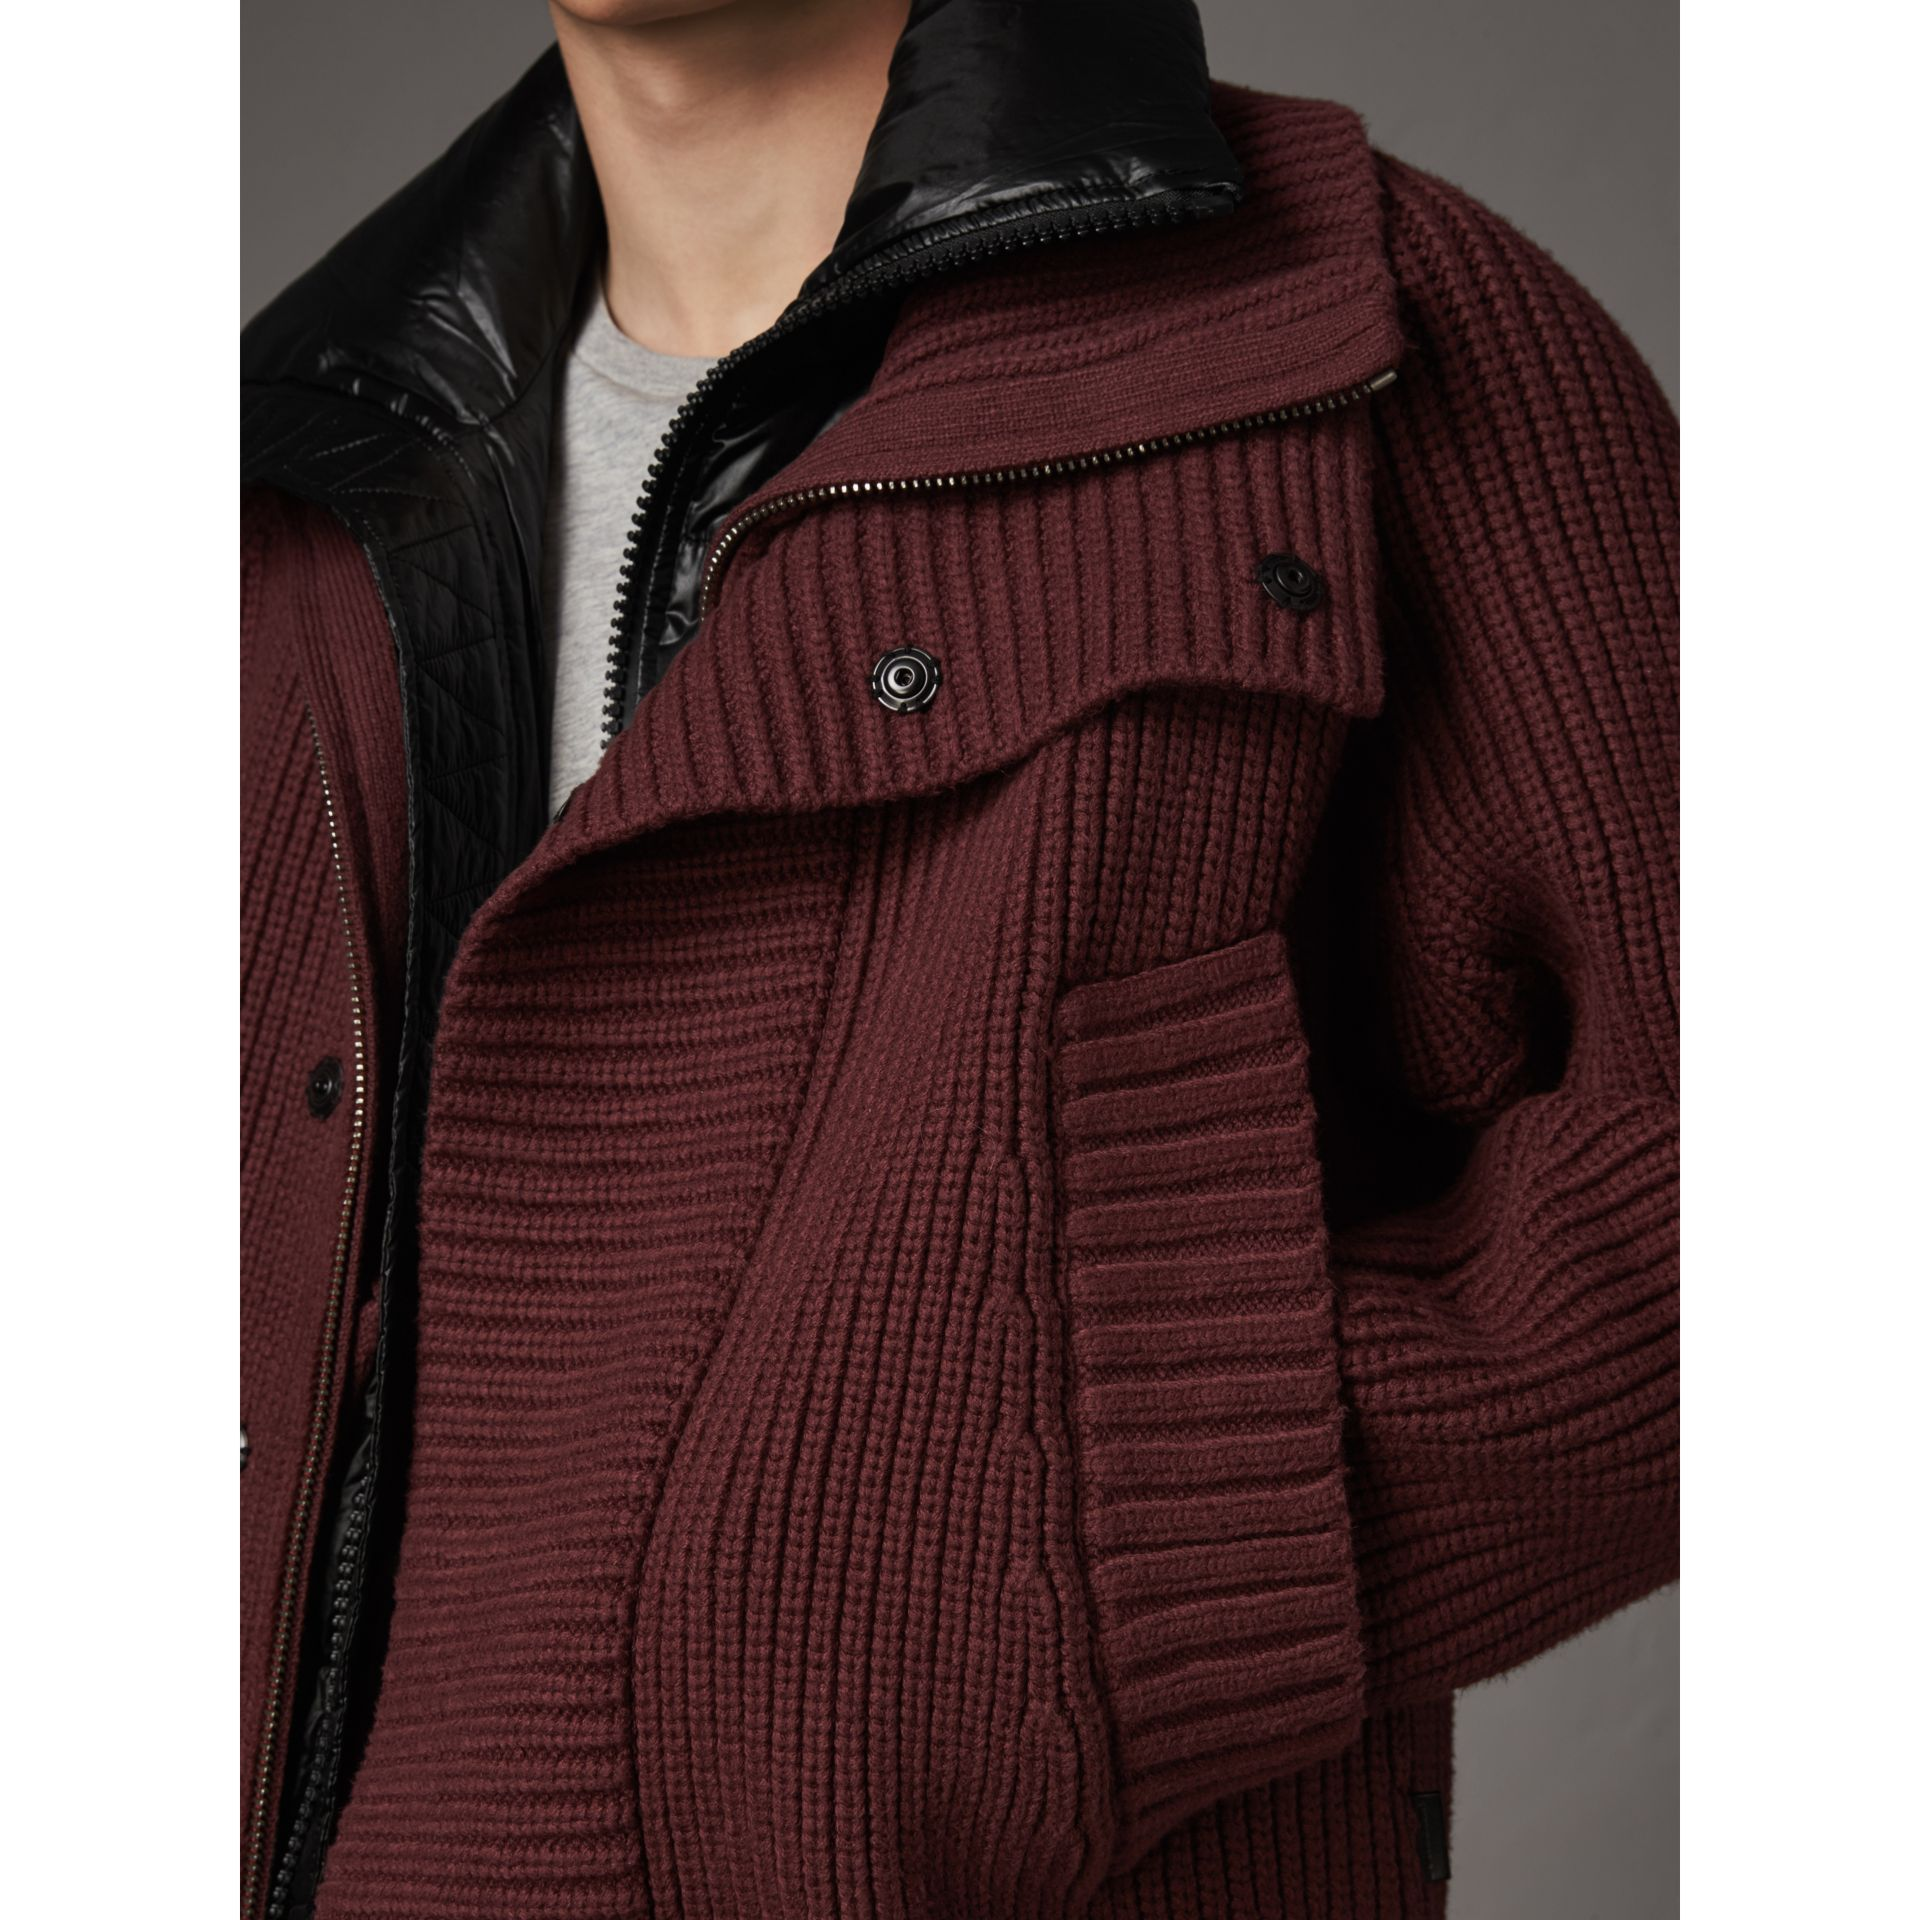 Rib Knit Cotton Blend Jacket with Down-filled Gilet in Mahogany Red - Men | Burberry - gallery image 2